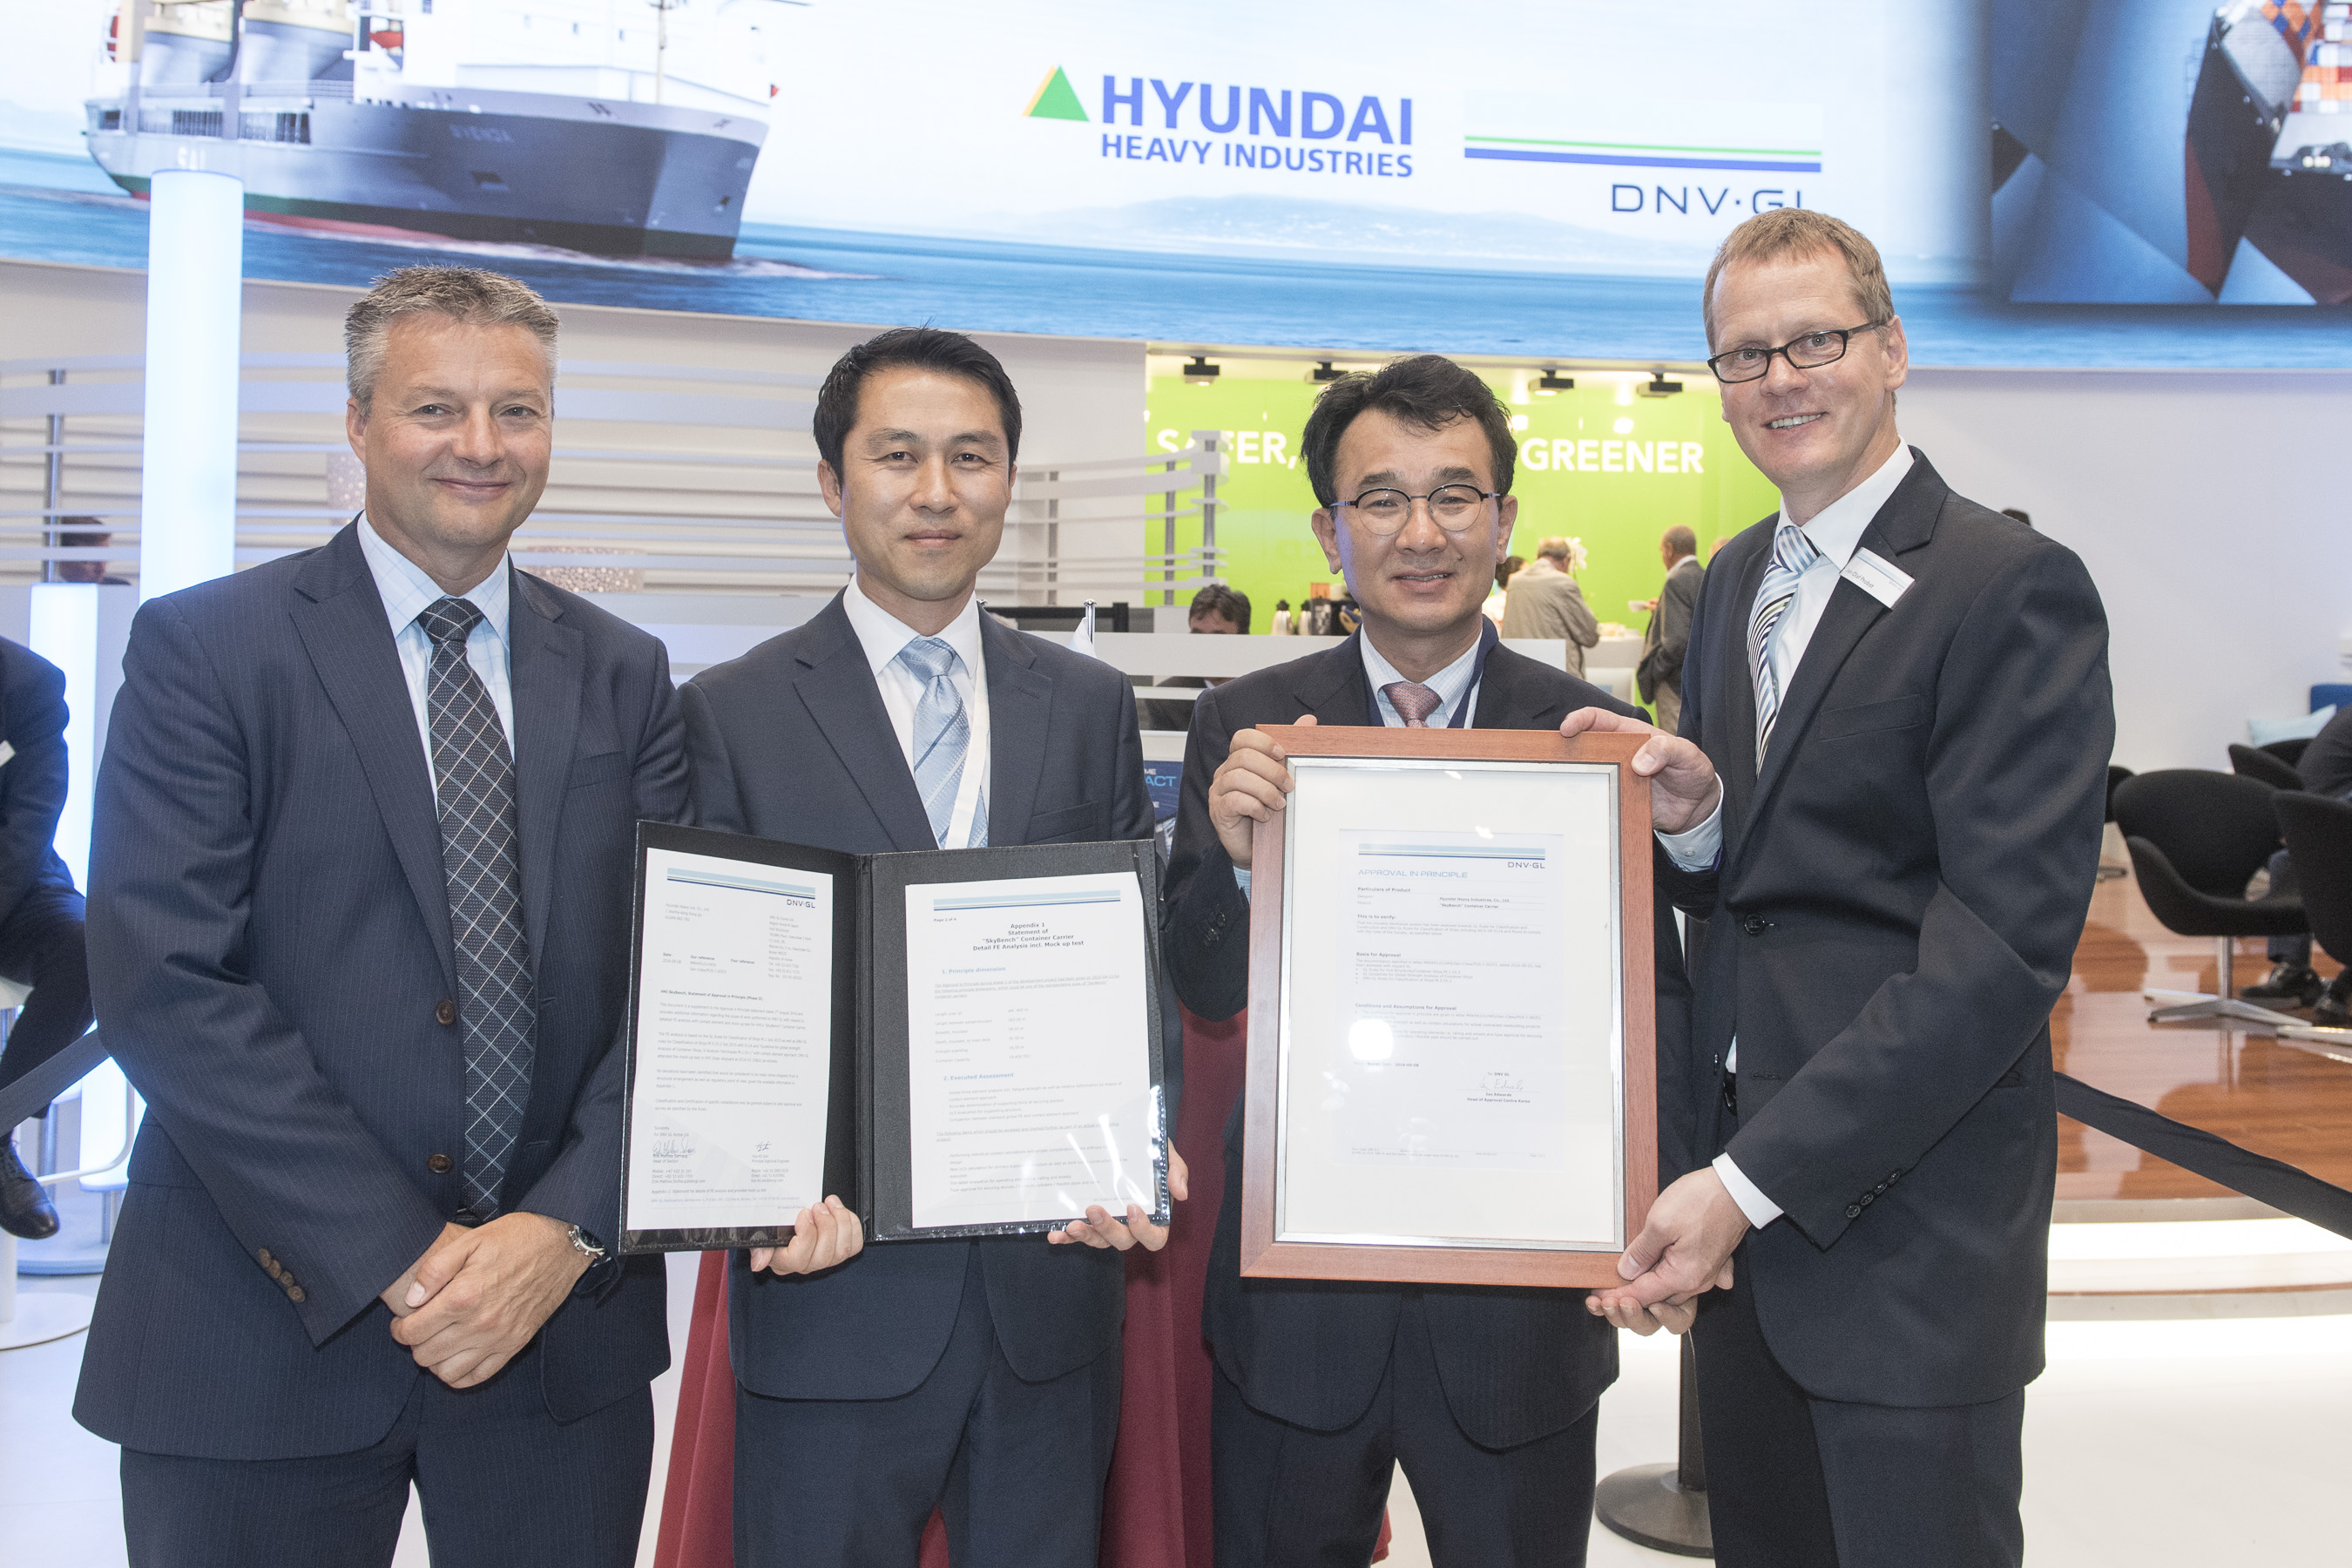 Hyundai Heavy Industries Receives 2nd AIP for SkyBenchTM, Innovative Design Concept for Maximizing Cargo Loading Capacity